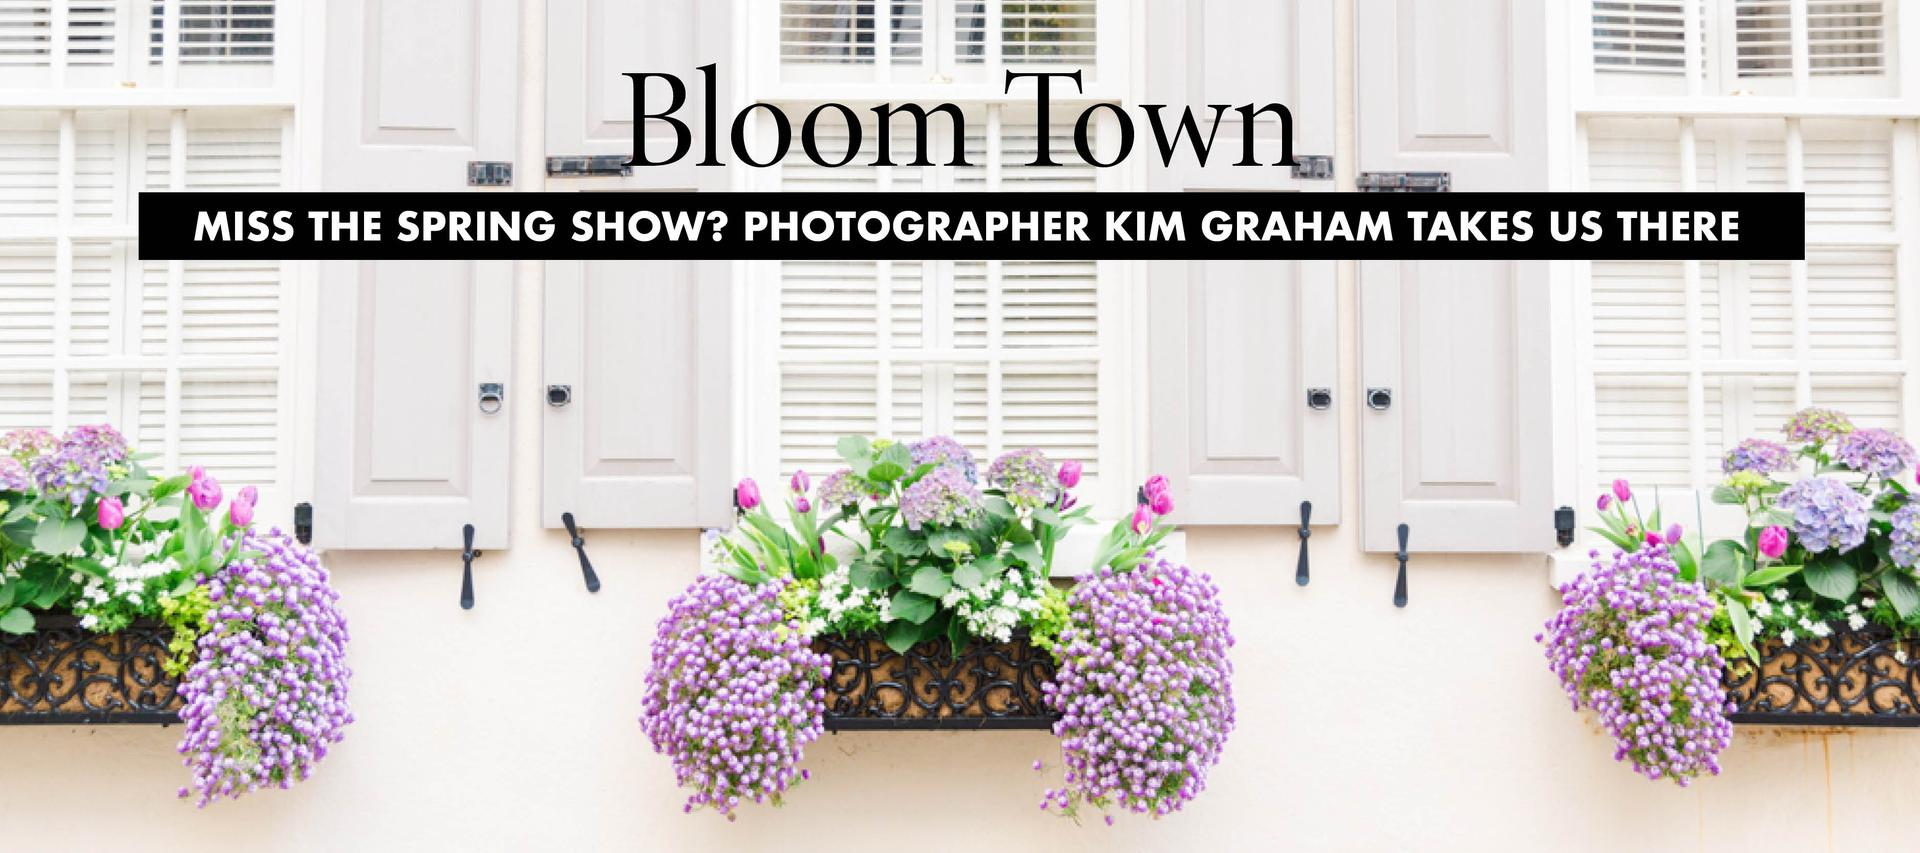 Bloom Town Photo Essay